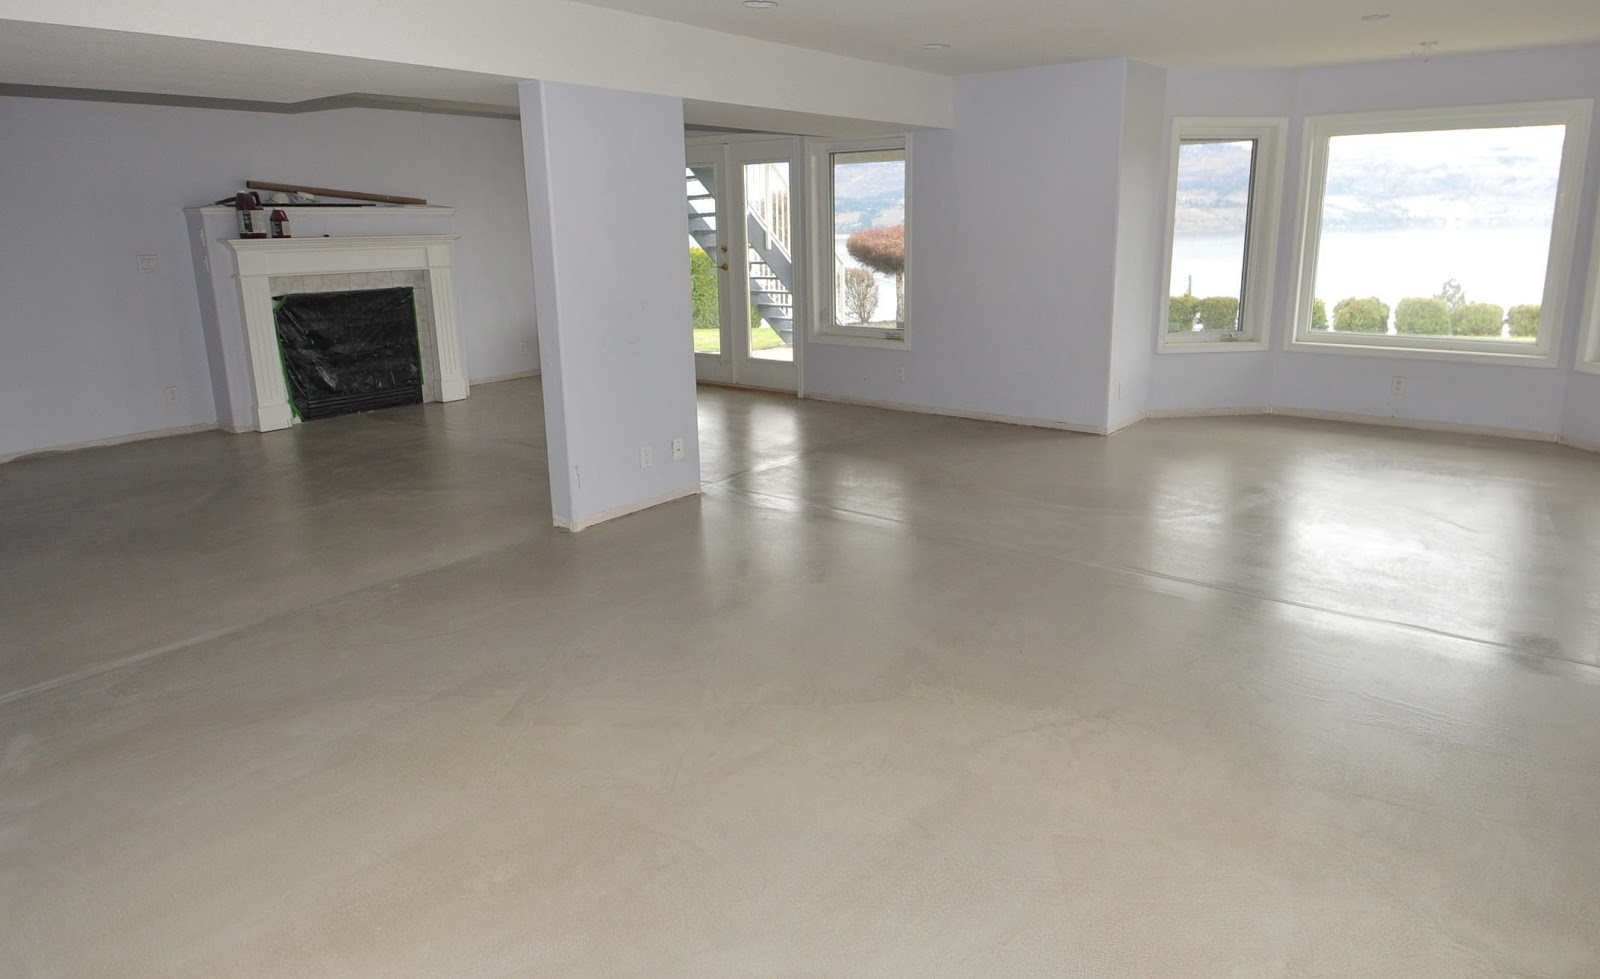 Best Way To Clean Painted Concrete Floors